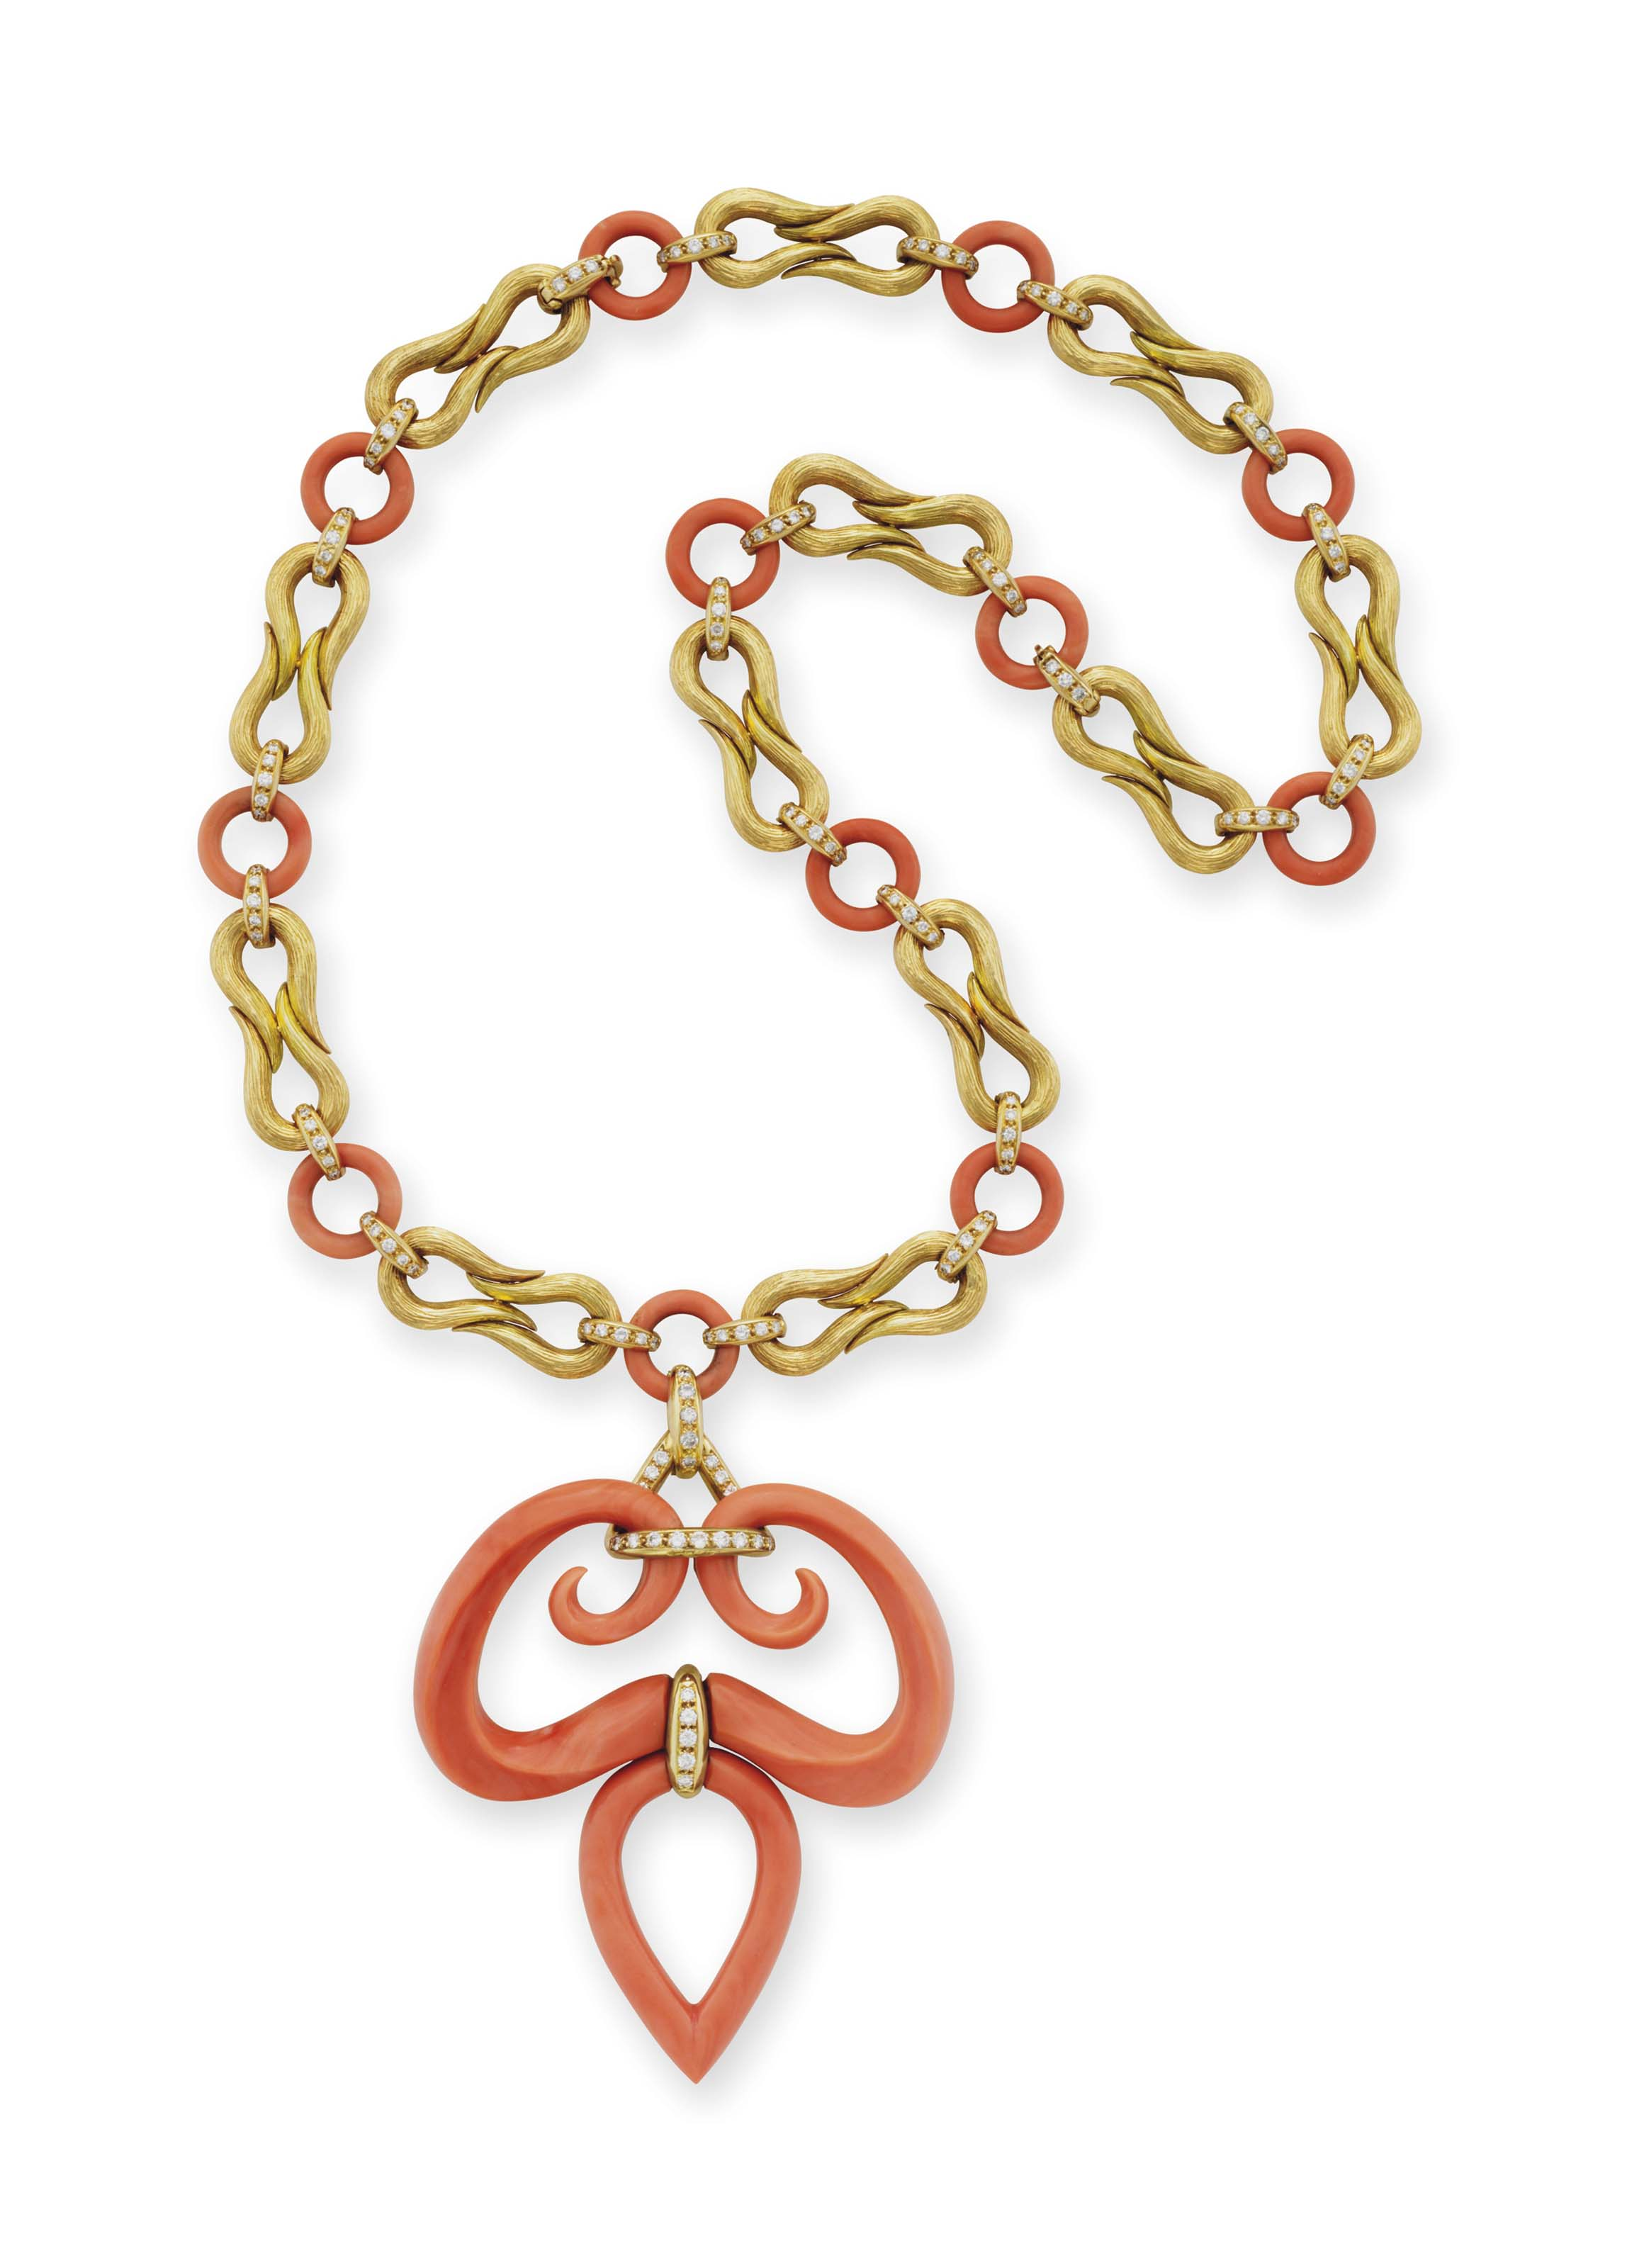 ~A CORAL, DIAMOND AND GOLD SAUTOIR, BY VAN CLEEF & ARPELS